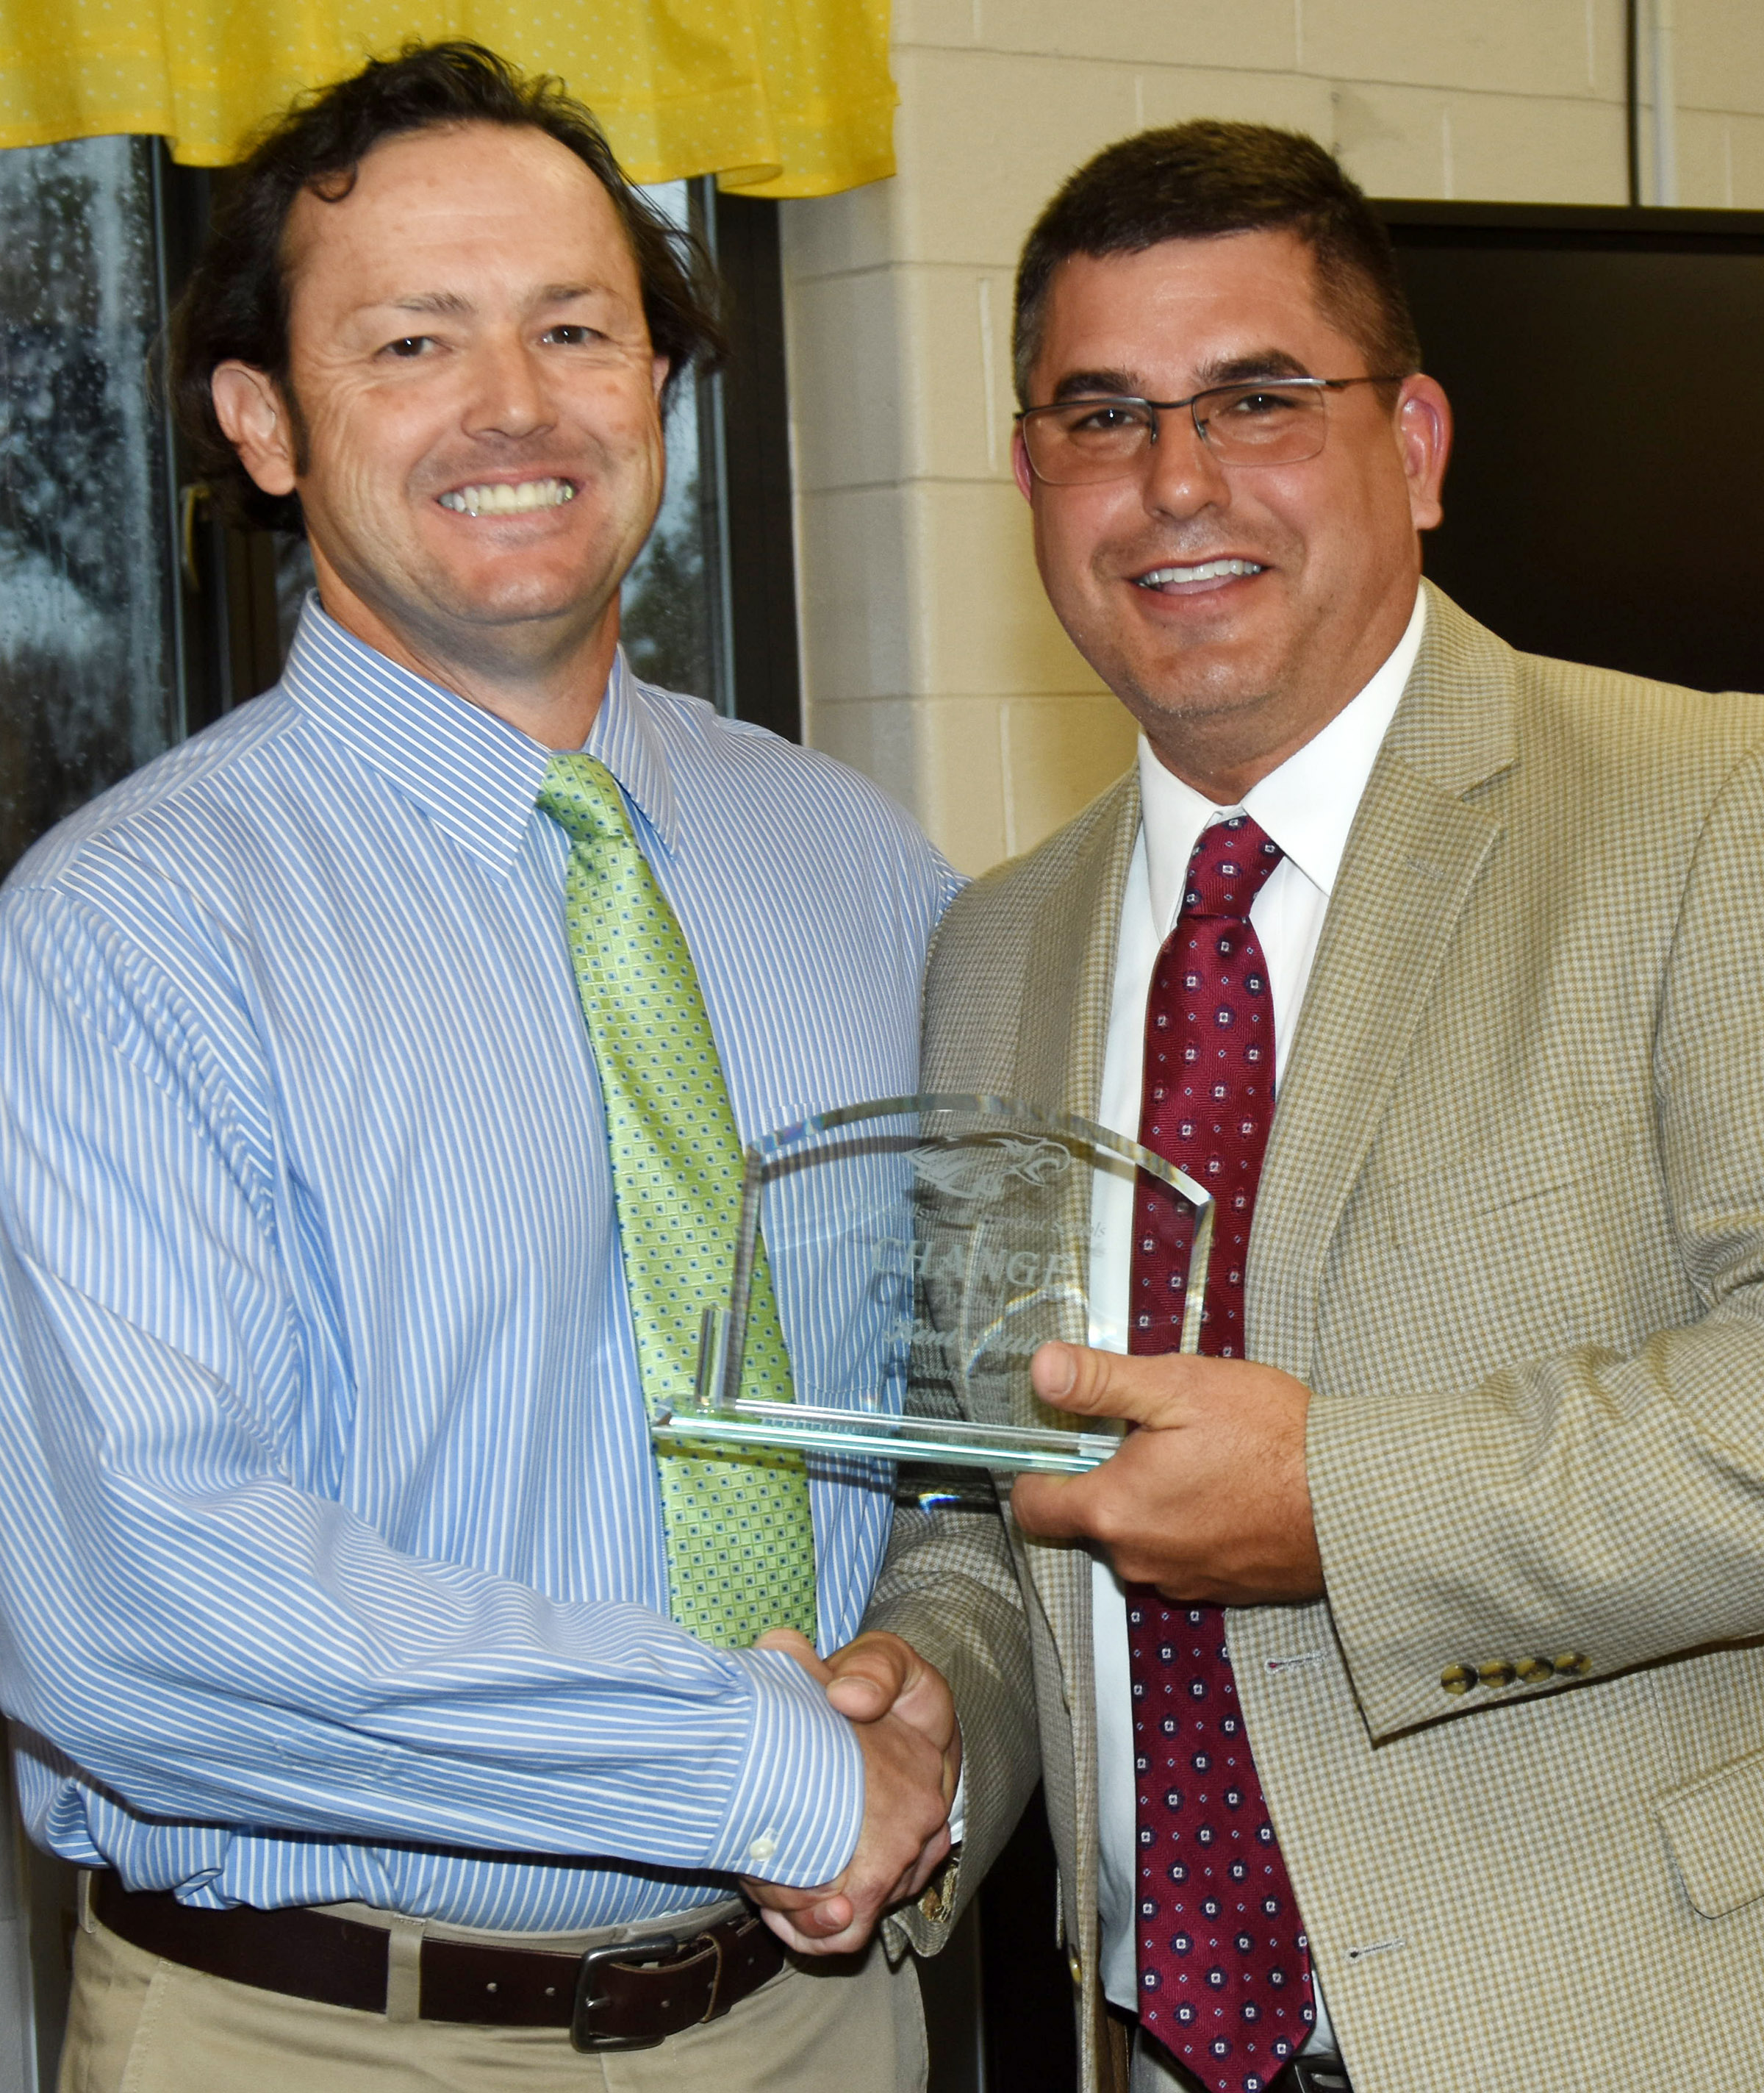 Campbellsville Independent Schools Superintendent Kirby Smith, at right, honors CIS Chief Academic Officer Kent Settle with the certified Change Award.